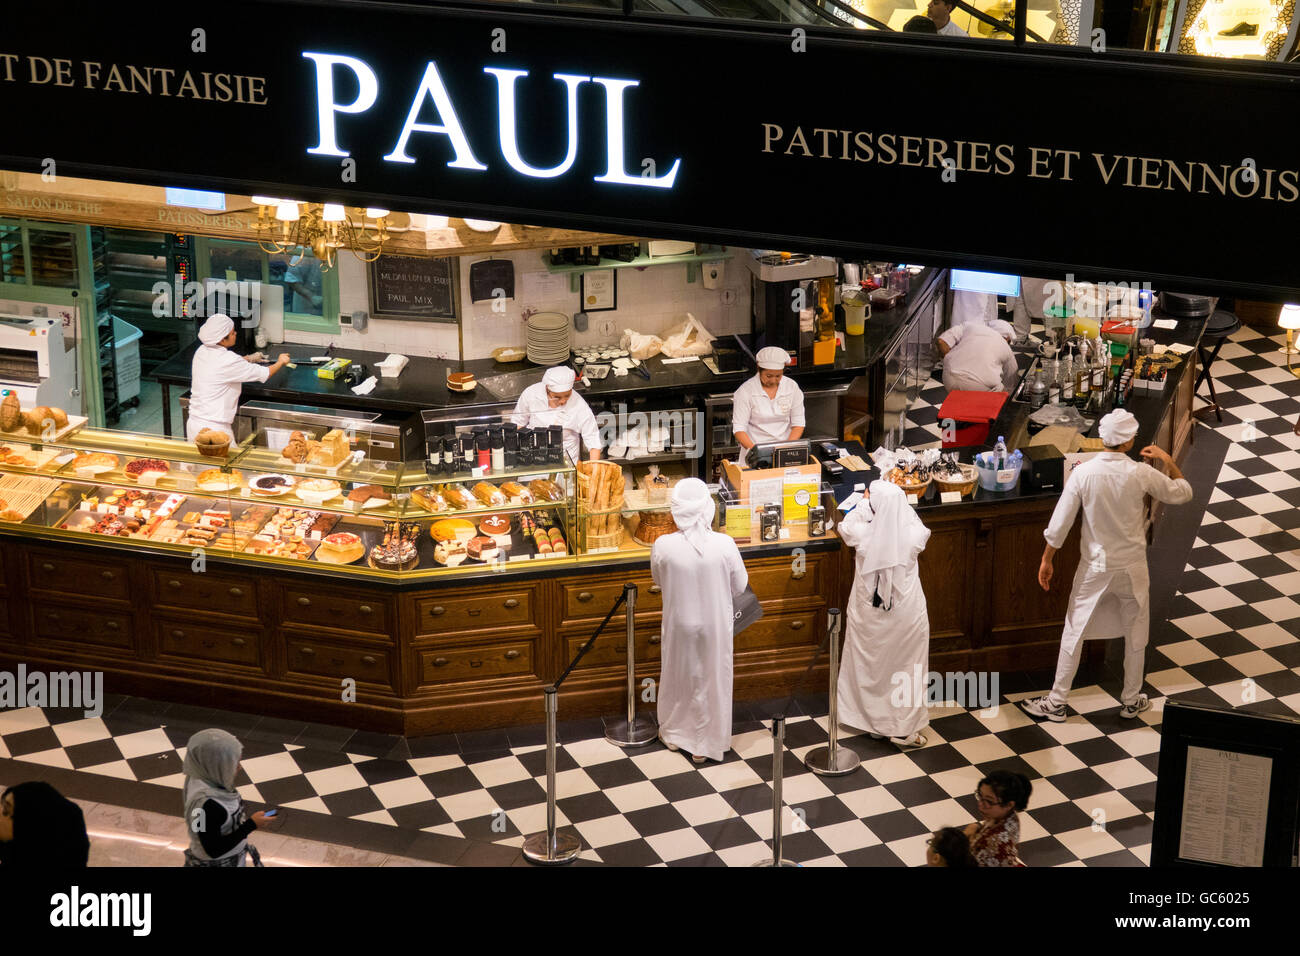 Muslims order at Paul Patisserie for Iftar during the holy month of Ramadan in Dubai - Stock Image